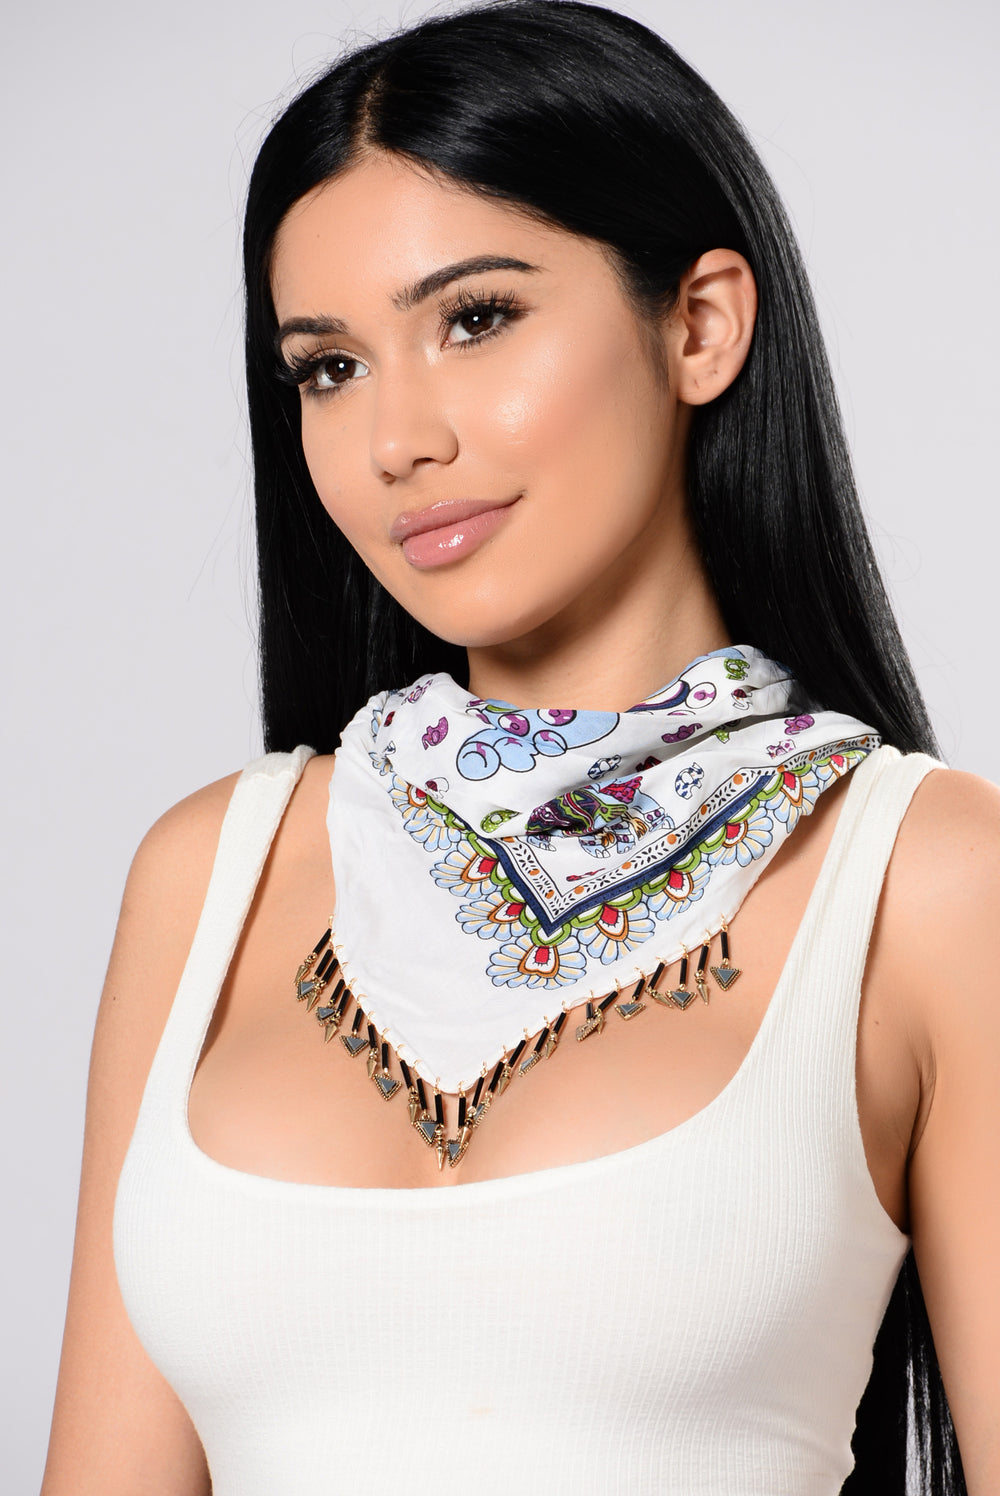 Gypsy Trip Bandana Necklace - White